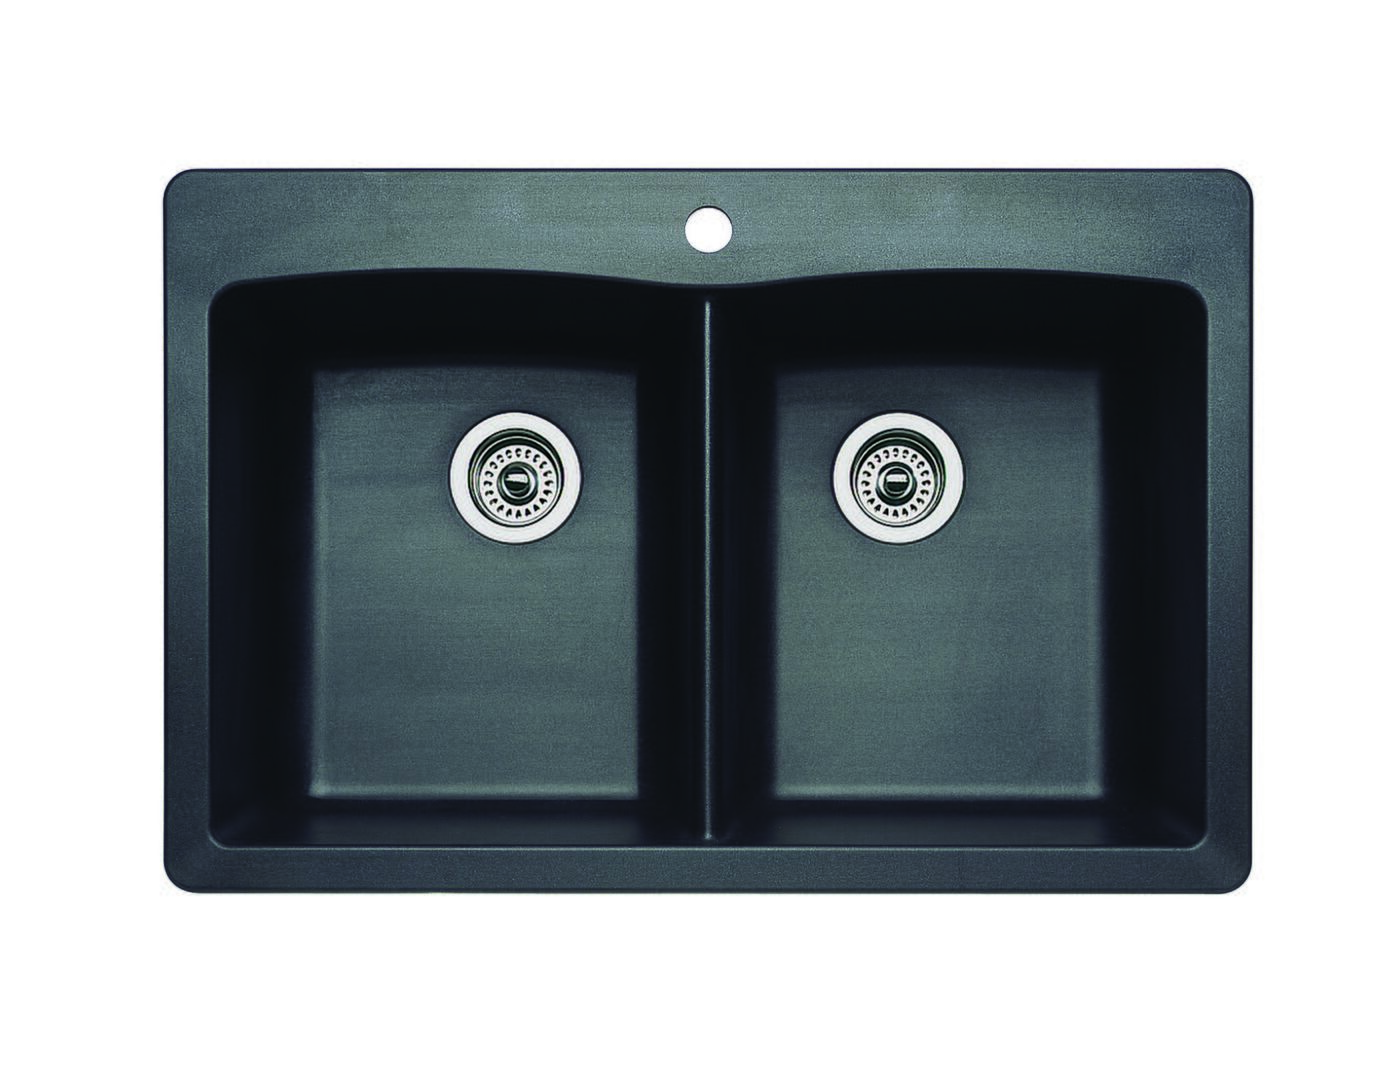 Blanco 440220 kitchen sink appliances connection for Blancoamerica com kitchen sinks